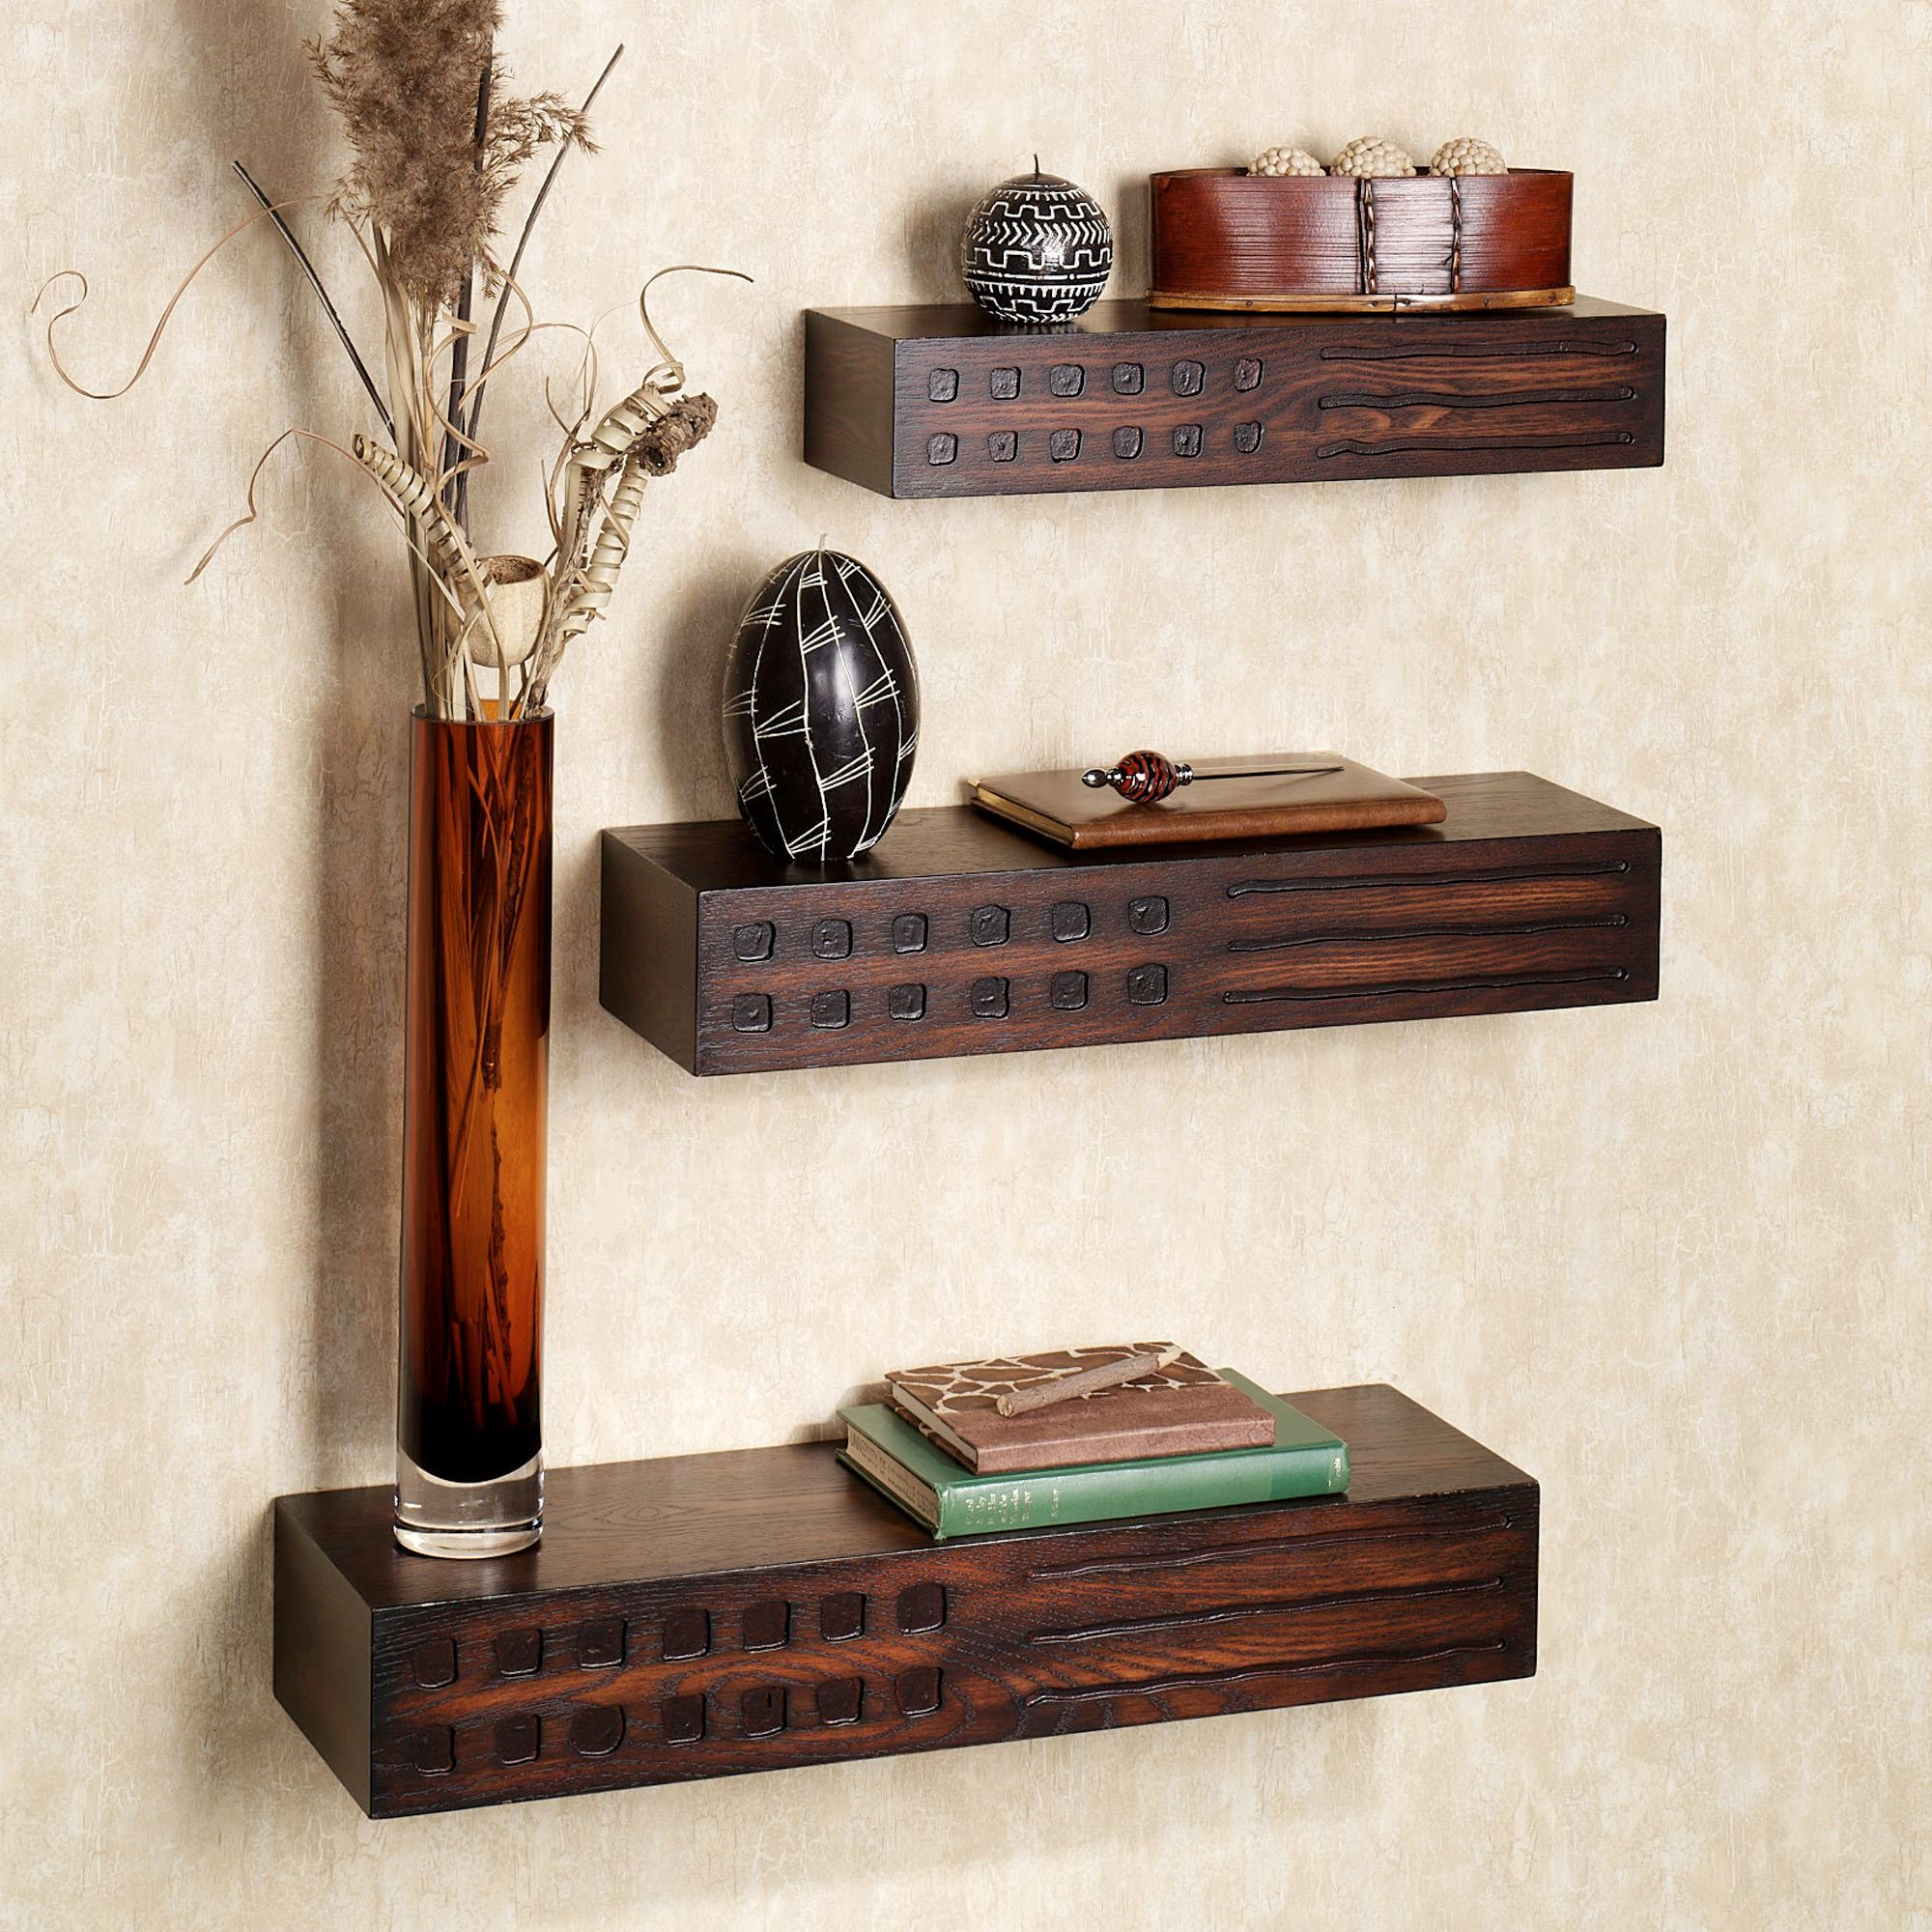 To enlarge wall shelves, touch EEAGJUI